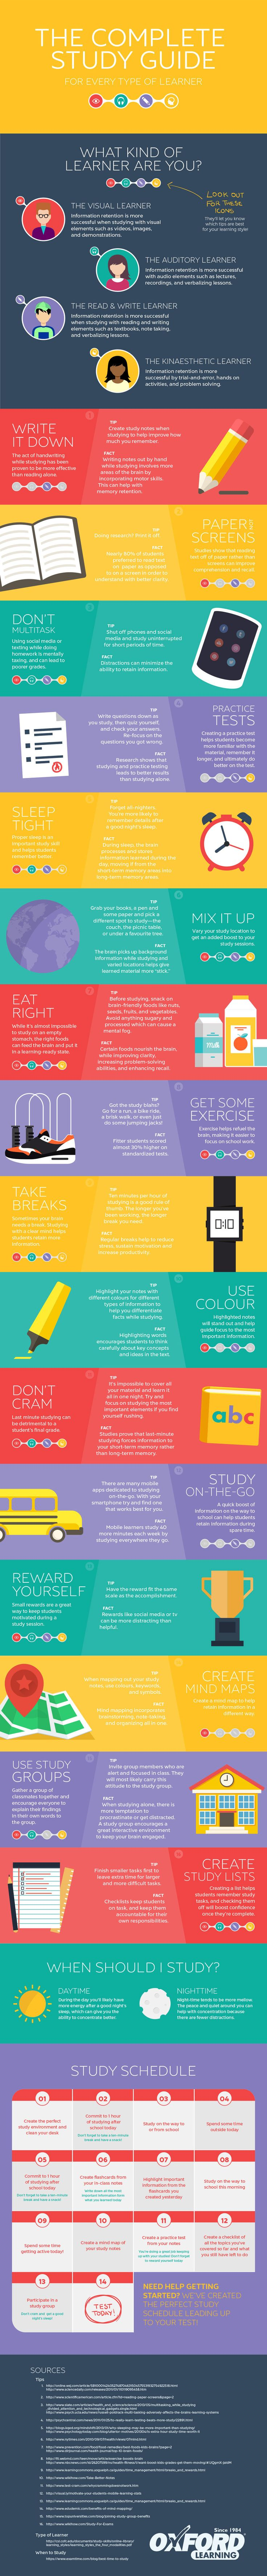 31 Best Actuarial Science Images On Pinterest Studying Colleges Power Integrations 39s Electrical Engineering Blog Eeweb Community The Complete Study Guide For Every Type Of Learner Infographic